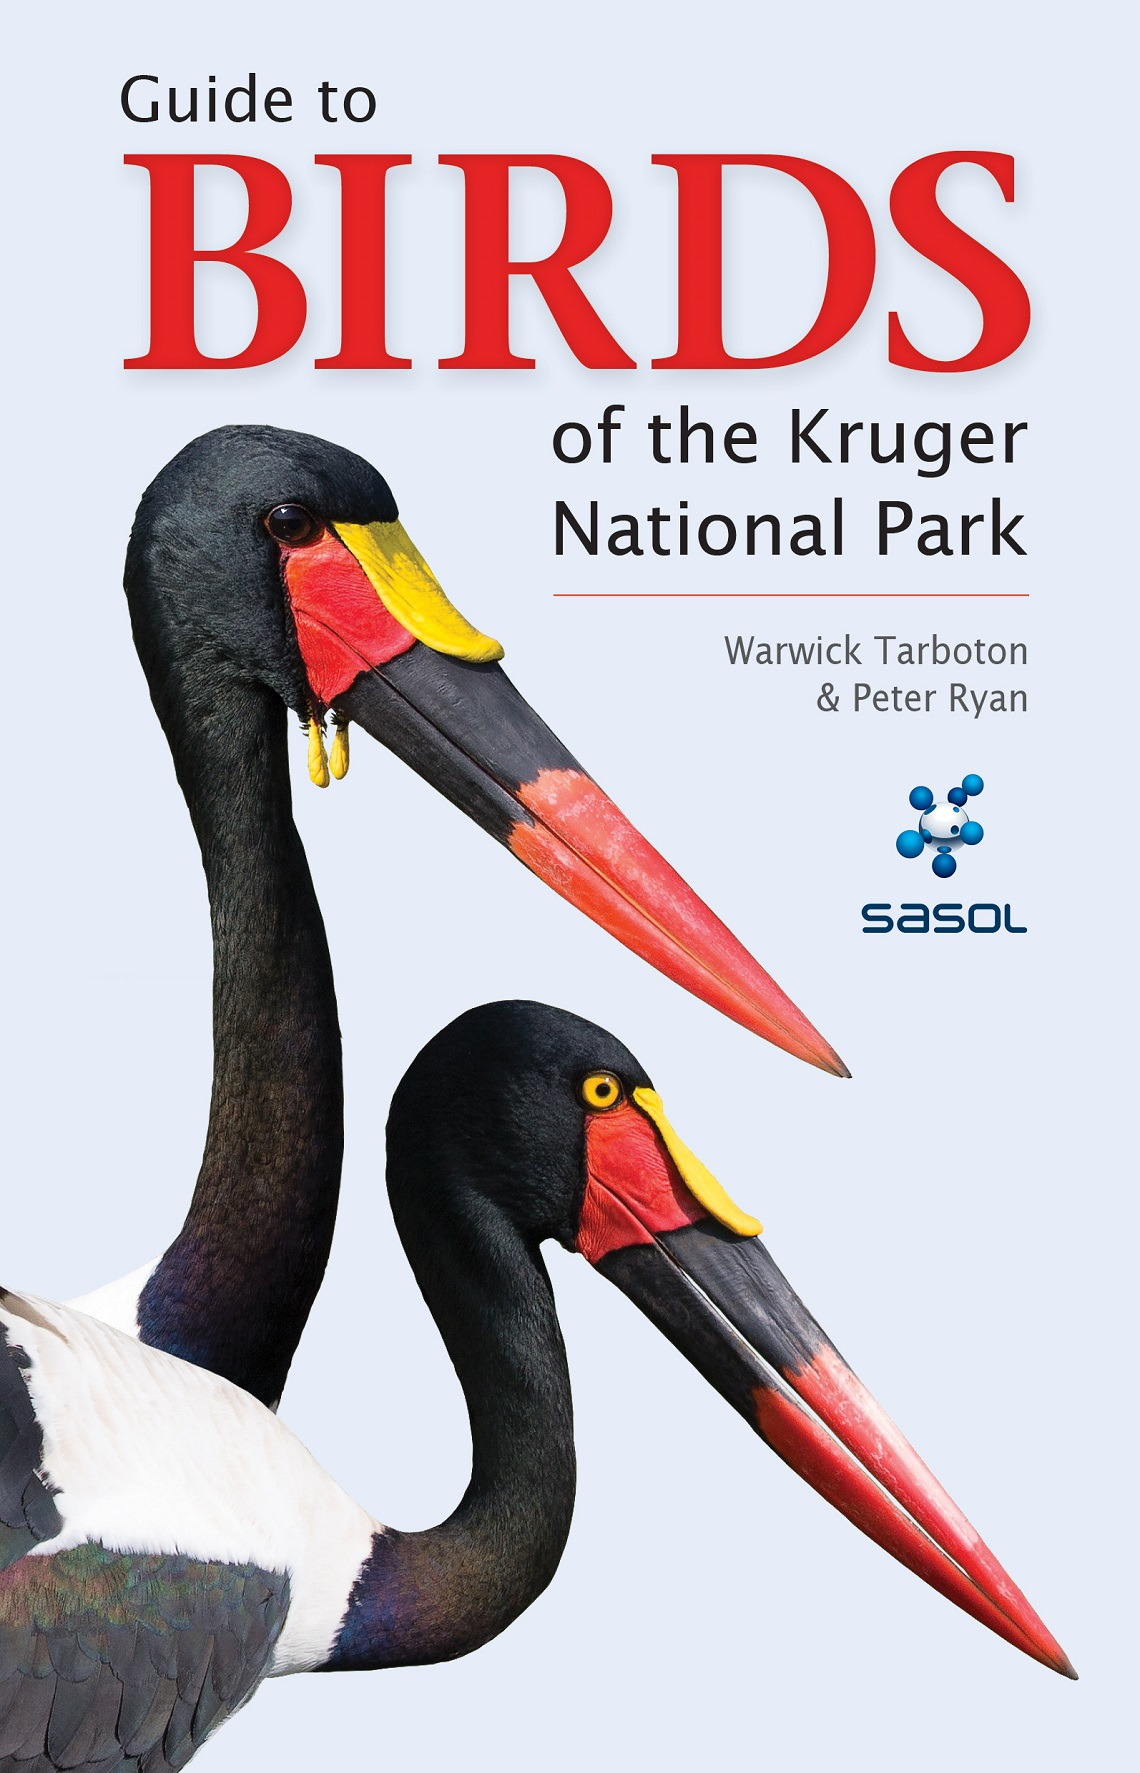 guide-to-birds-of-the-kruger-national-park-cover